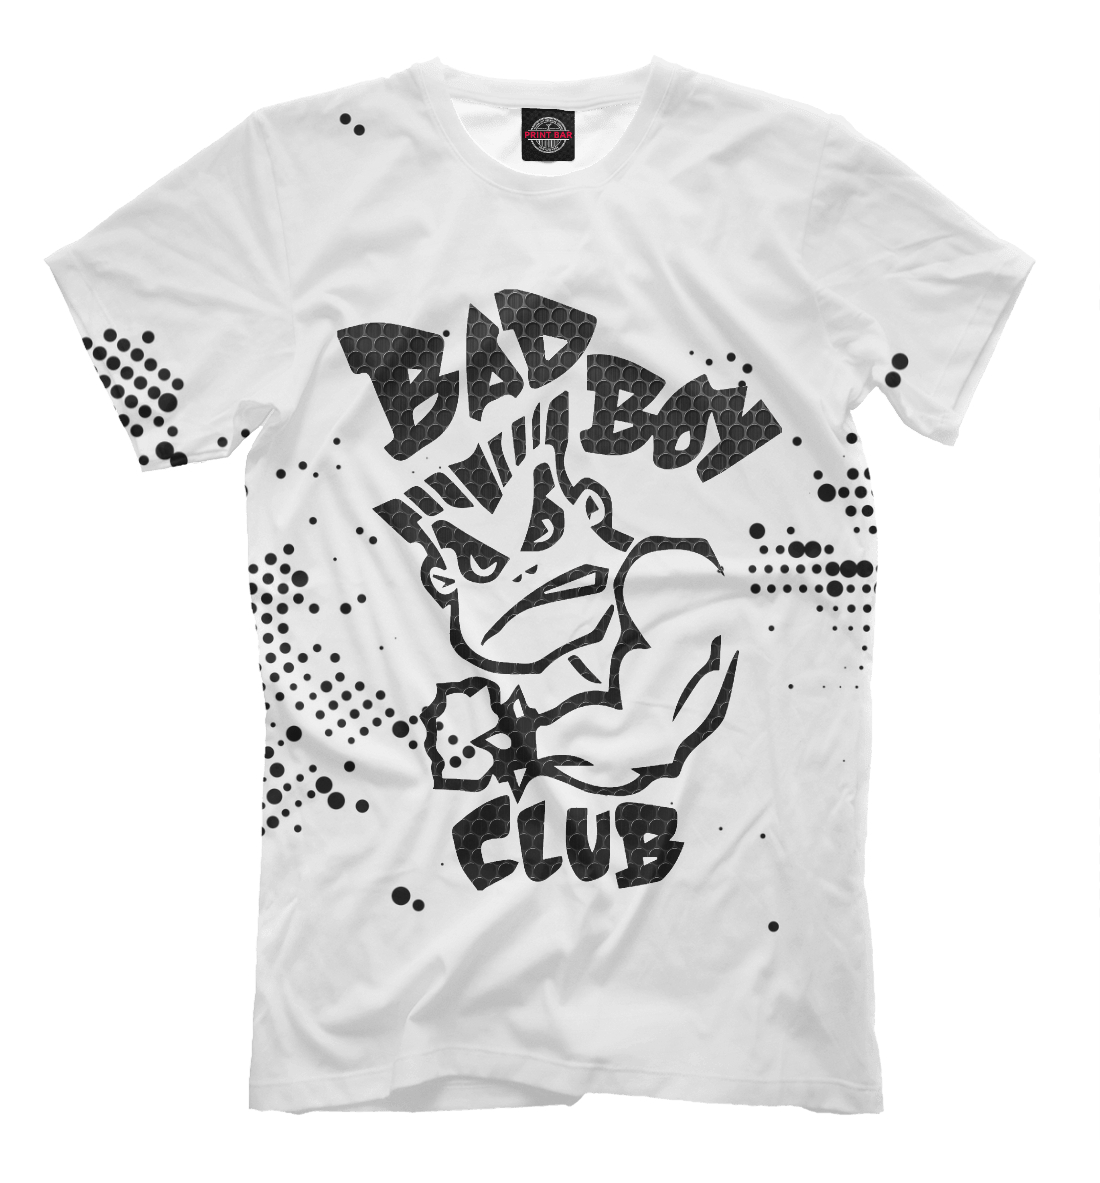 Купить Bad Boy Club, Printbar, Футболки, APD-553985-fut-2